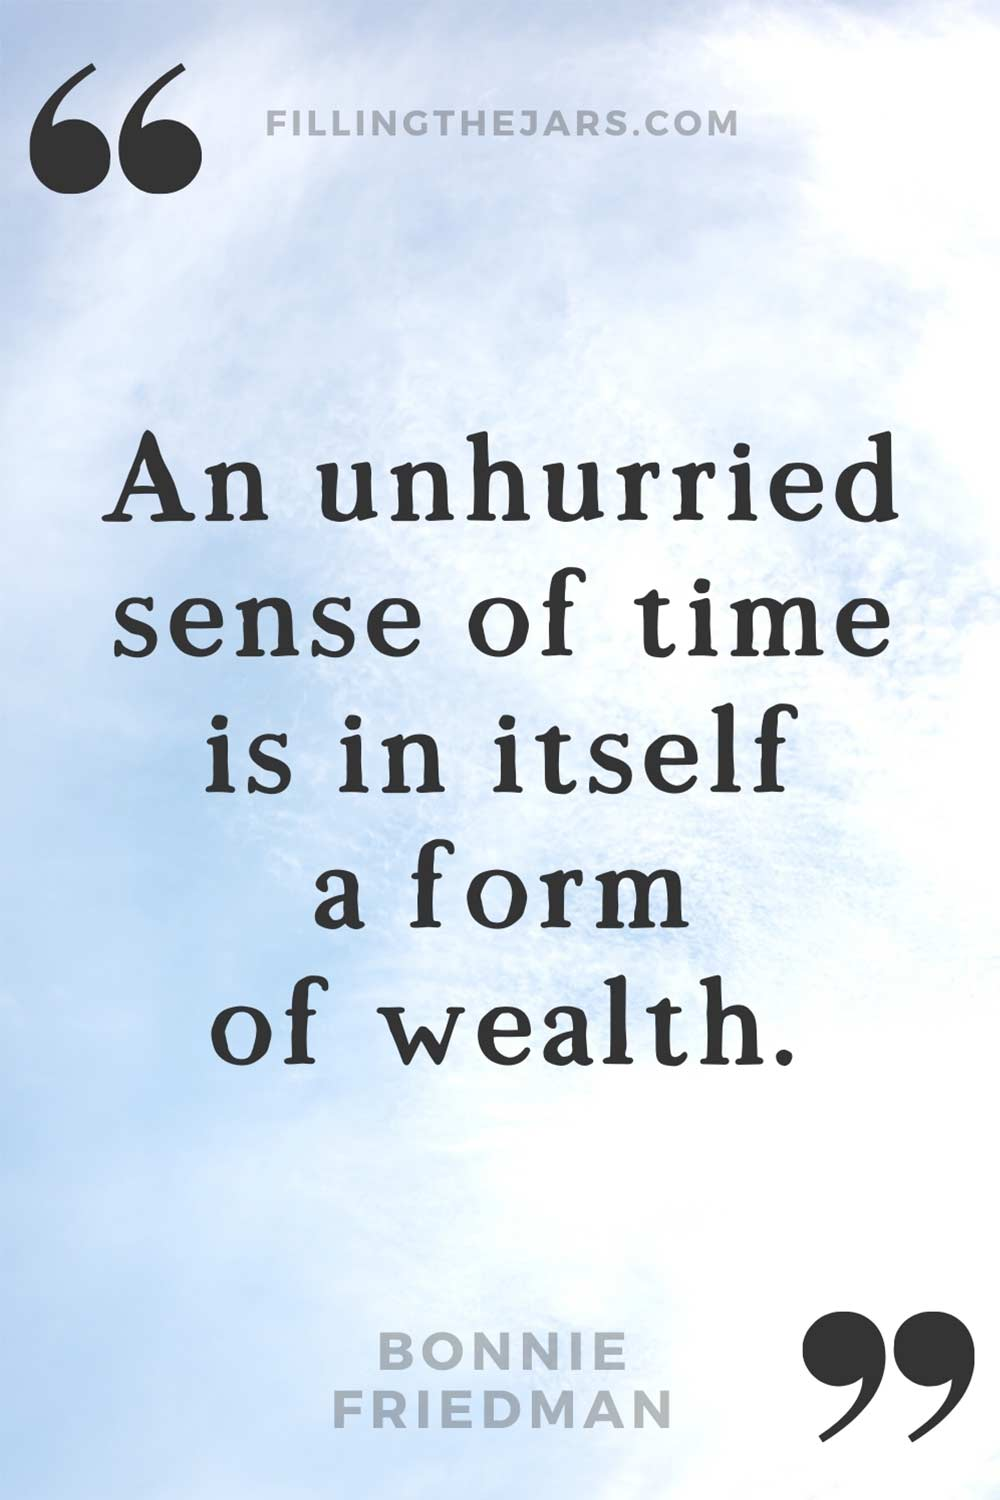 Bonnie Friedman unhurried sense of time is wealth quote in black text on daytime partly cloudy sky background.